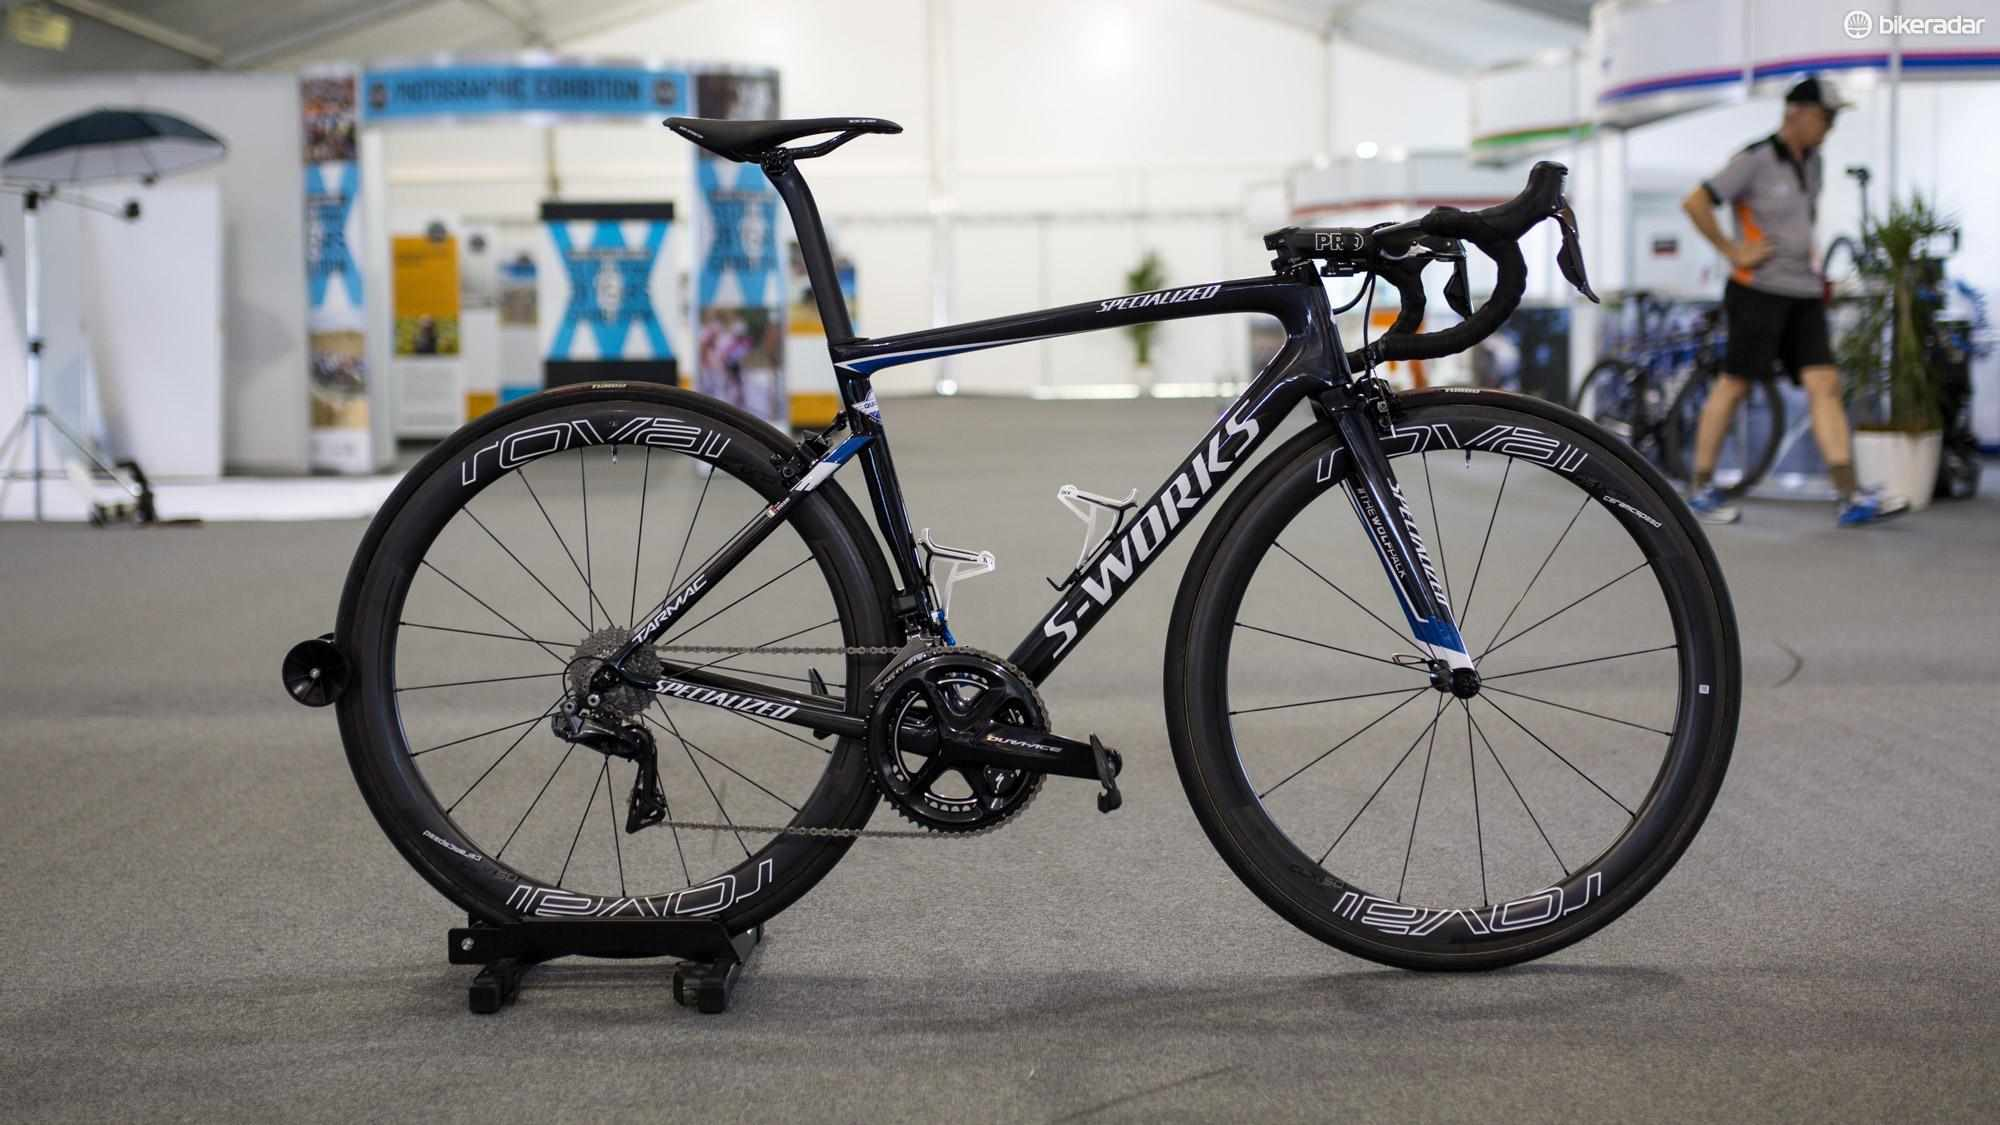 Elia Viviani is on the new S-Works Tarmac SL 6